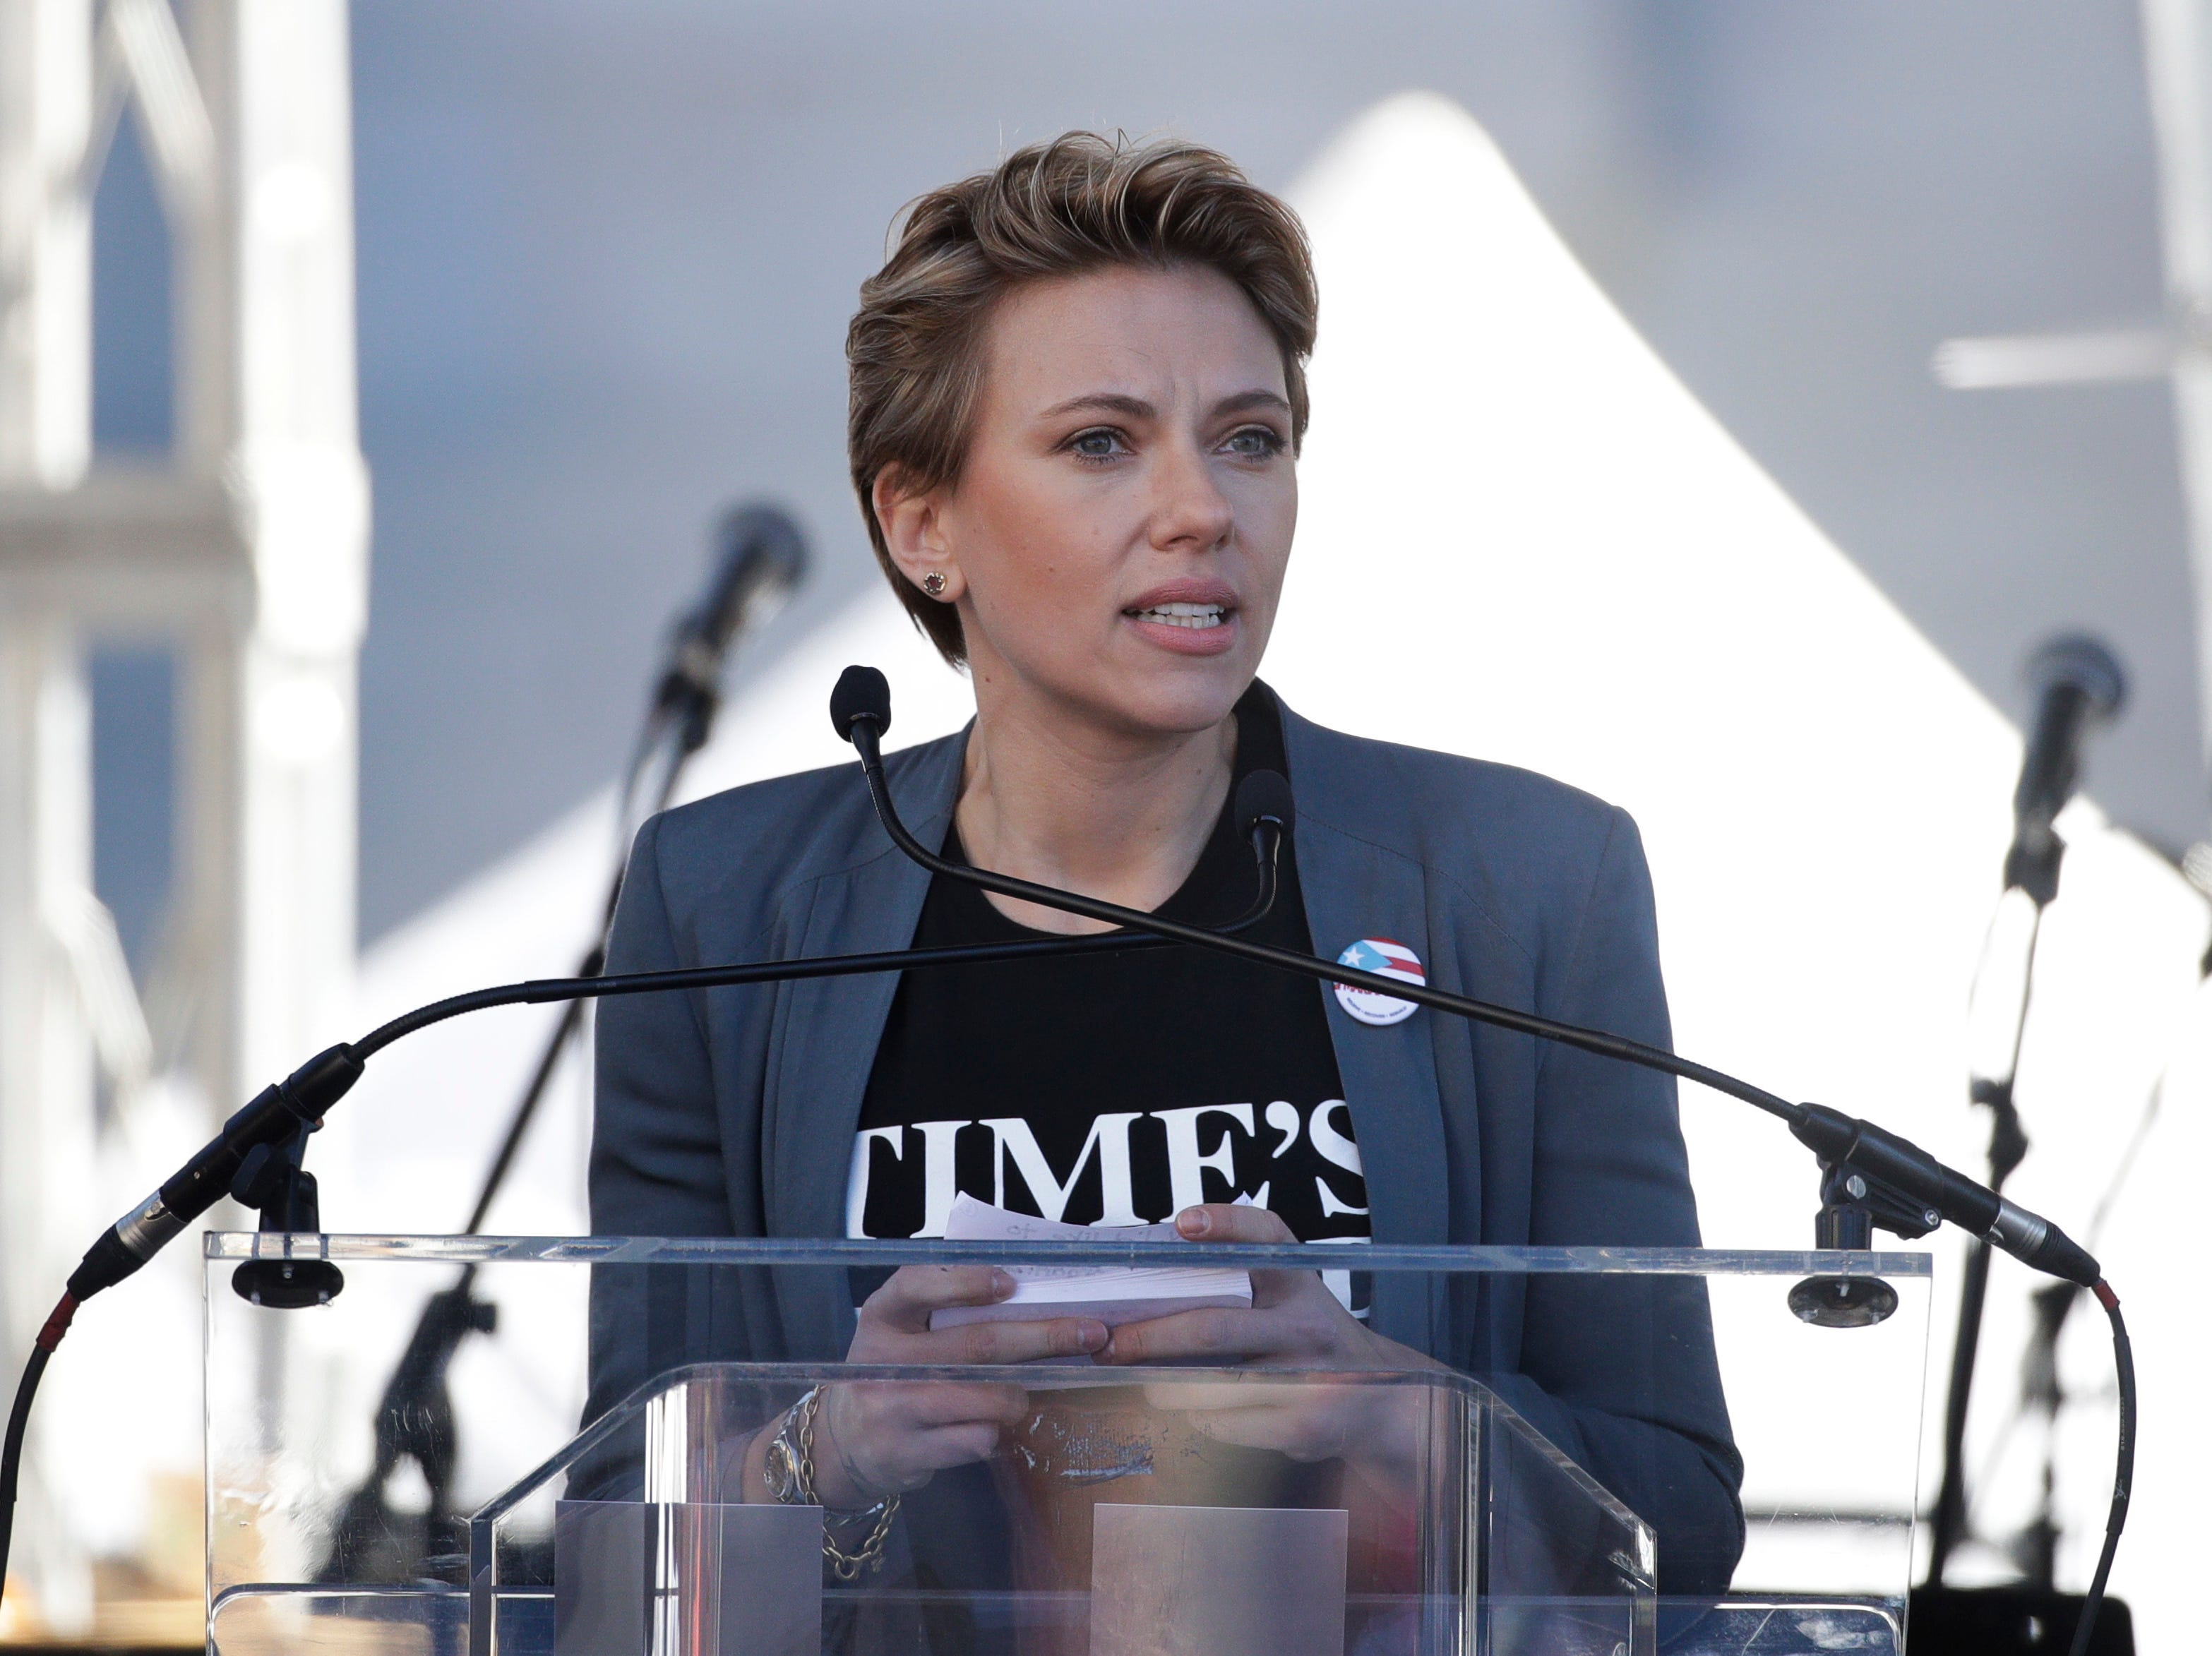 Jan. 20: Scarlett Johansson speaks at the Los Angeles Women's March against sexual violence and the policies of the Trump administration.